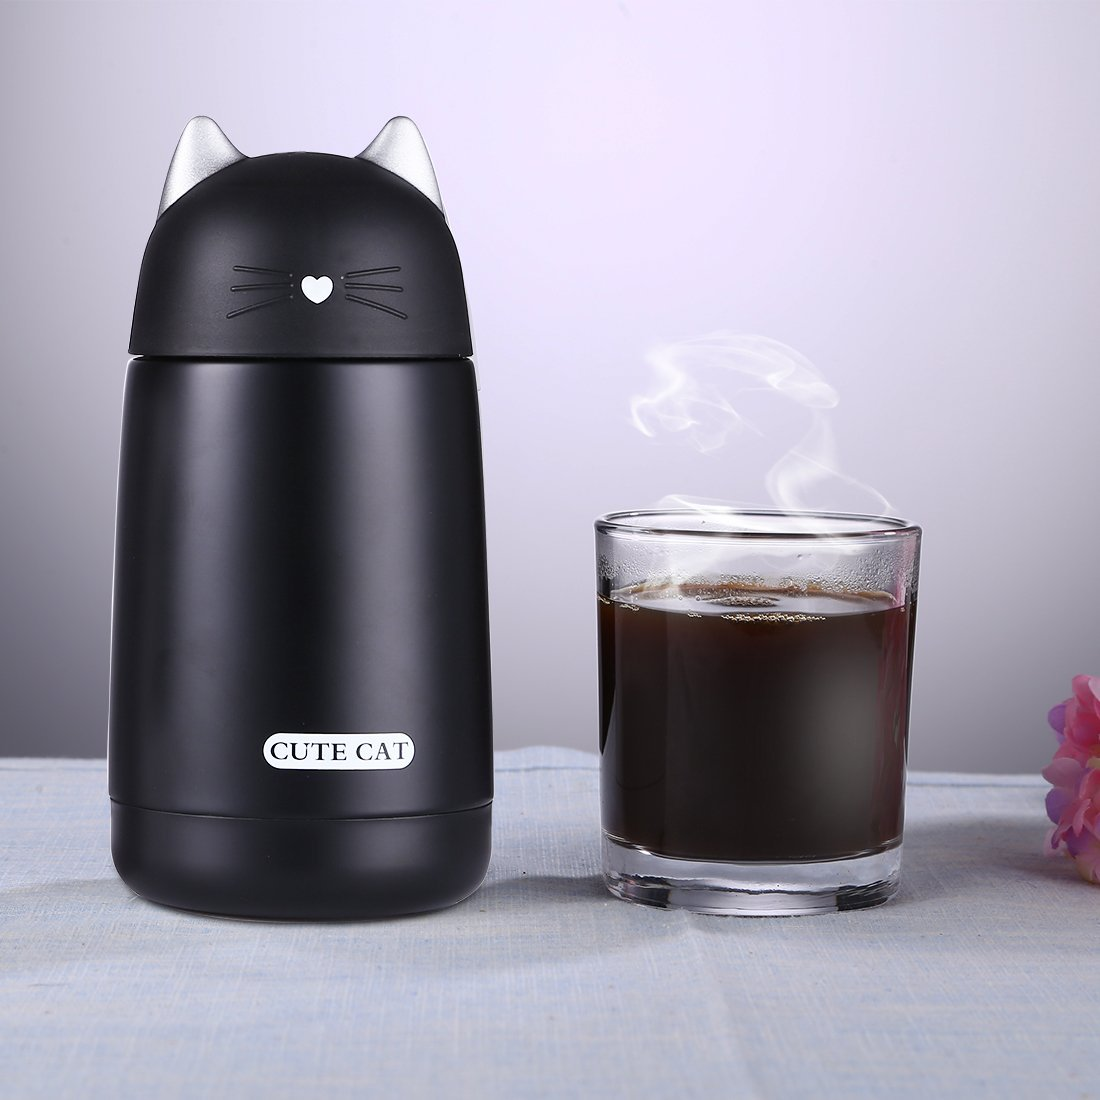 ONEISALL Cute Cat Thermos